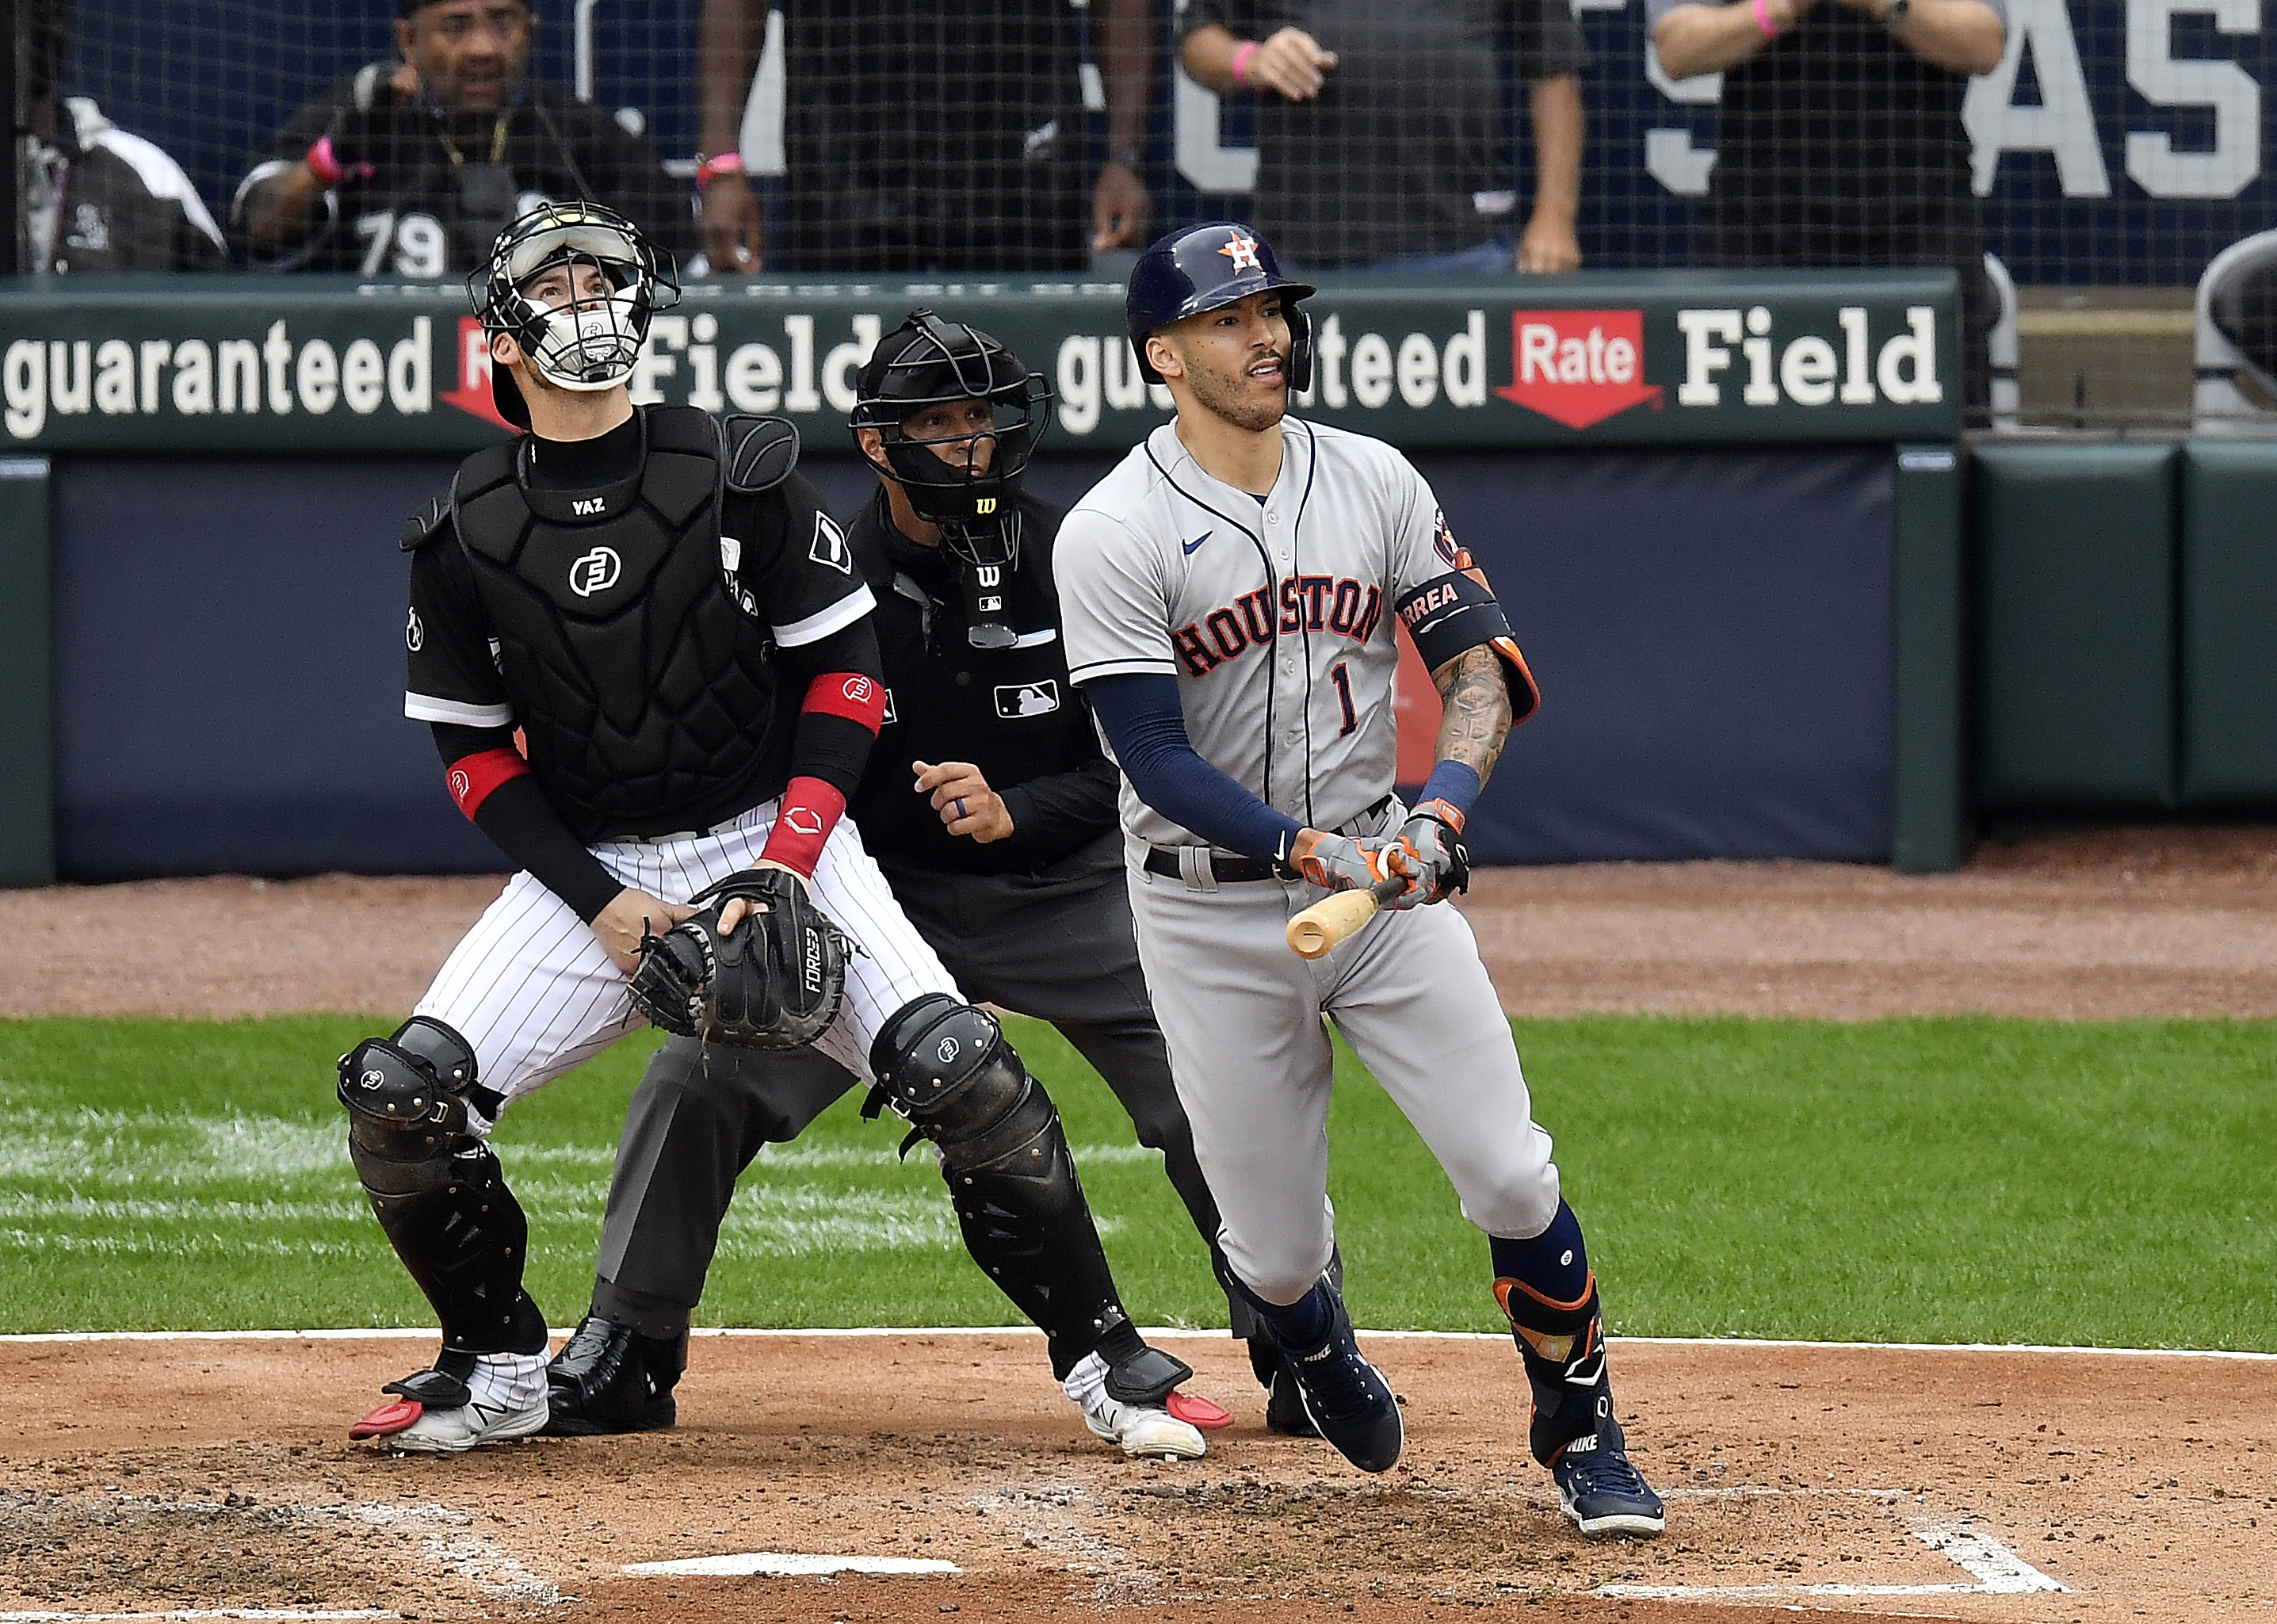 Carlos Correa #1 of the Houston Astros hits a two-run double during the 3rd inning of Game 4 of the American League Division Series against the Chicago White Sox at Guaranteed Rate Field on October 12, 2021 in Chicago, Illinois.